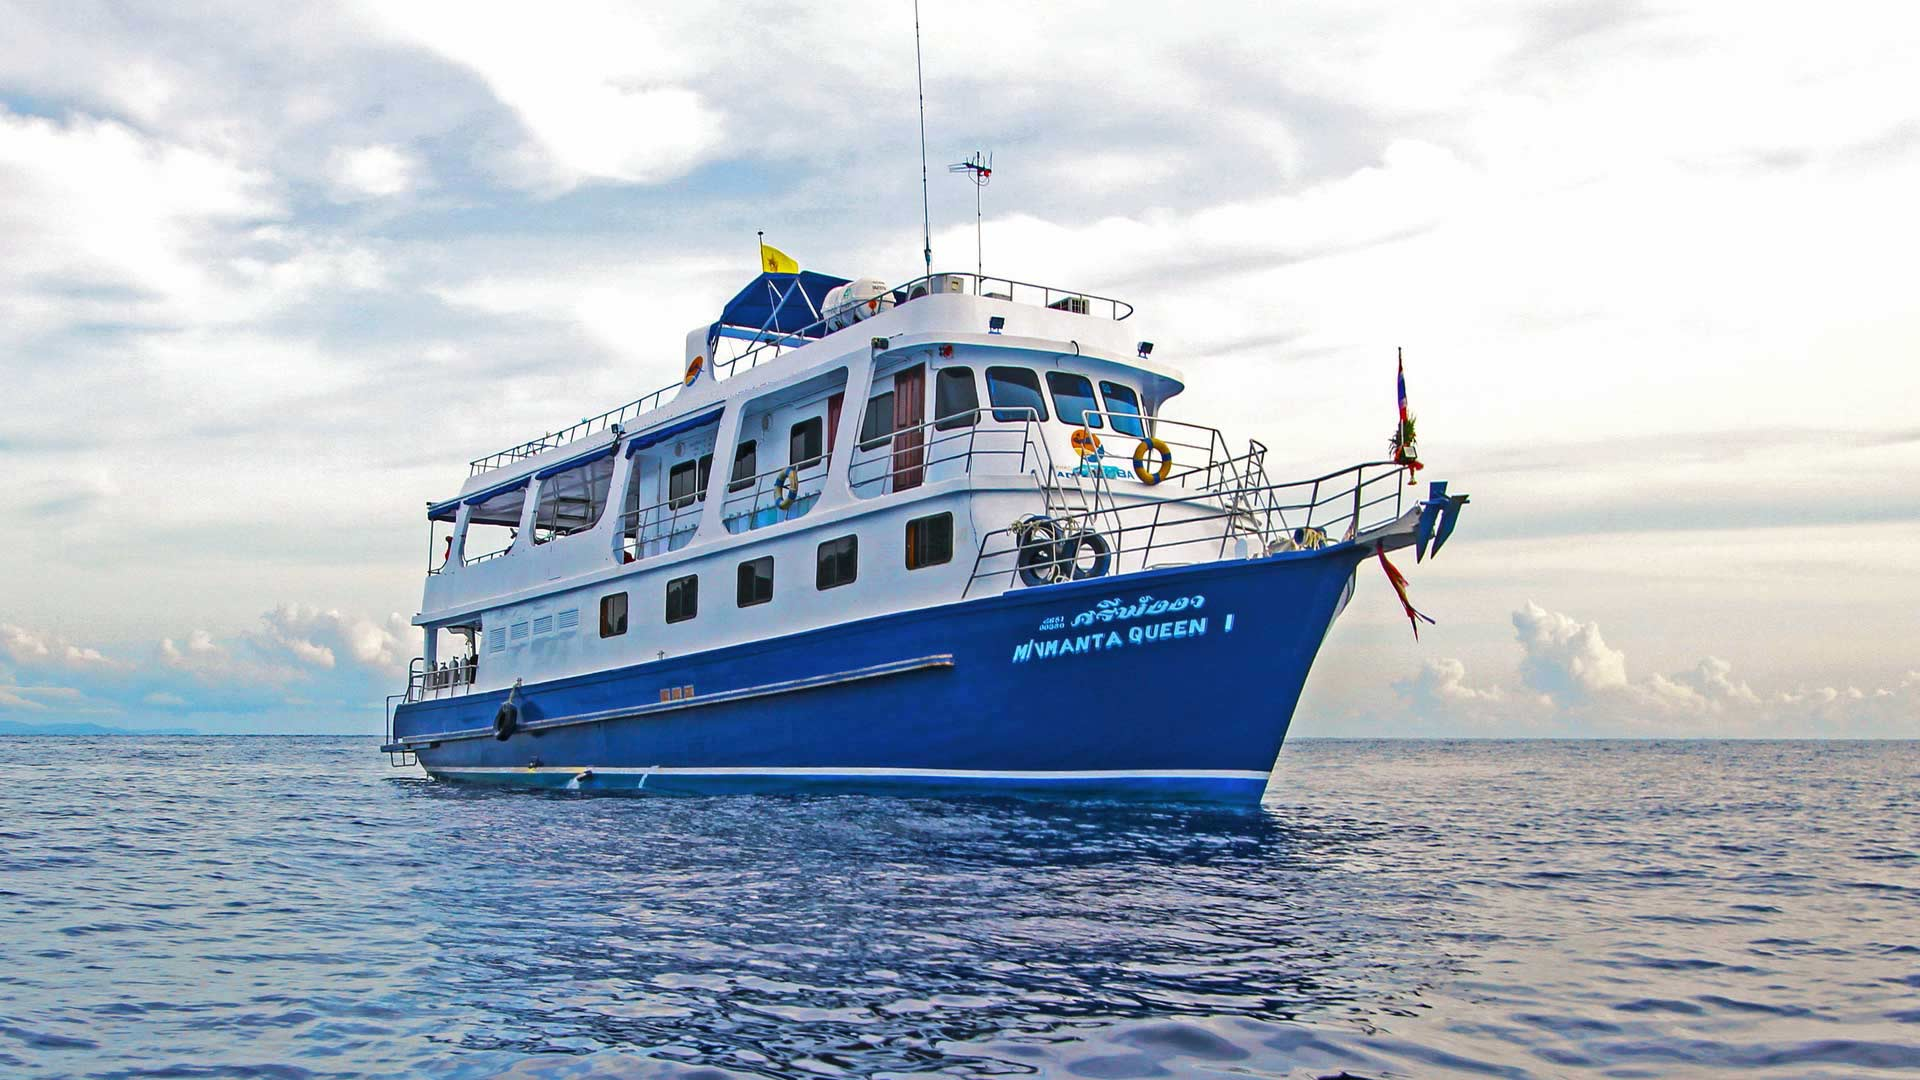 Similan islands diving liveaboard tour on the Manta Queen 1